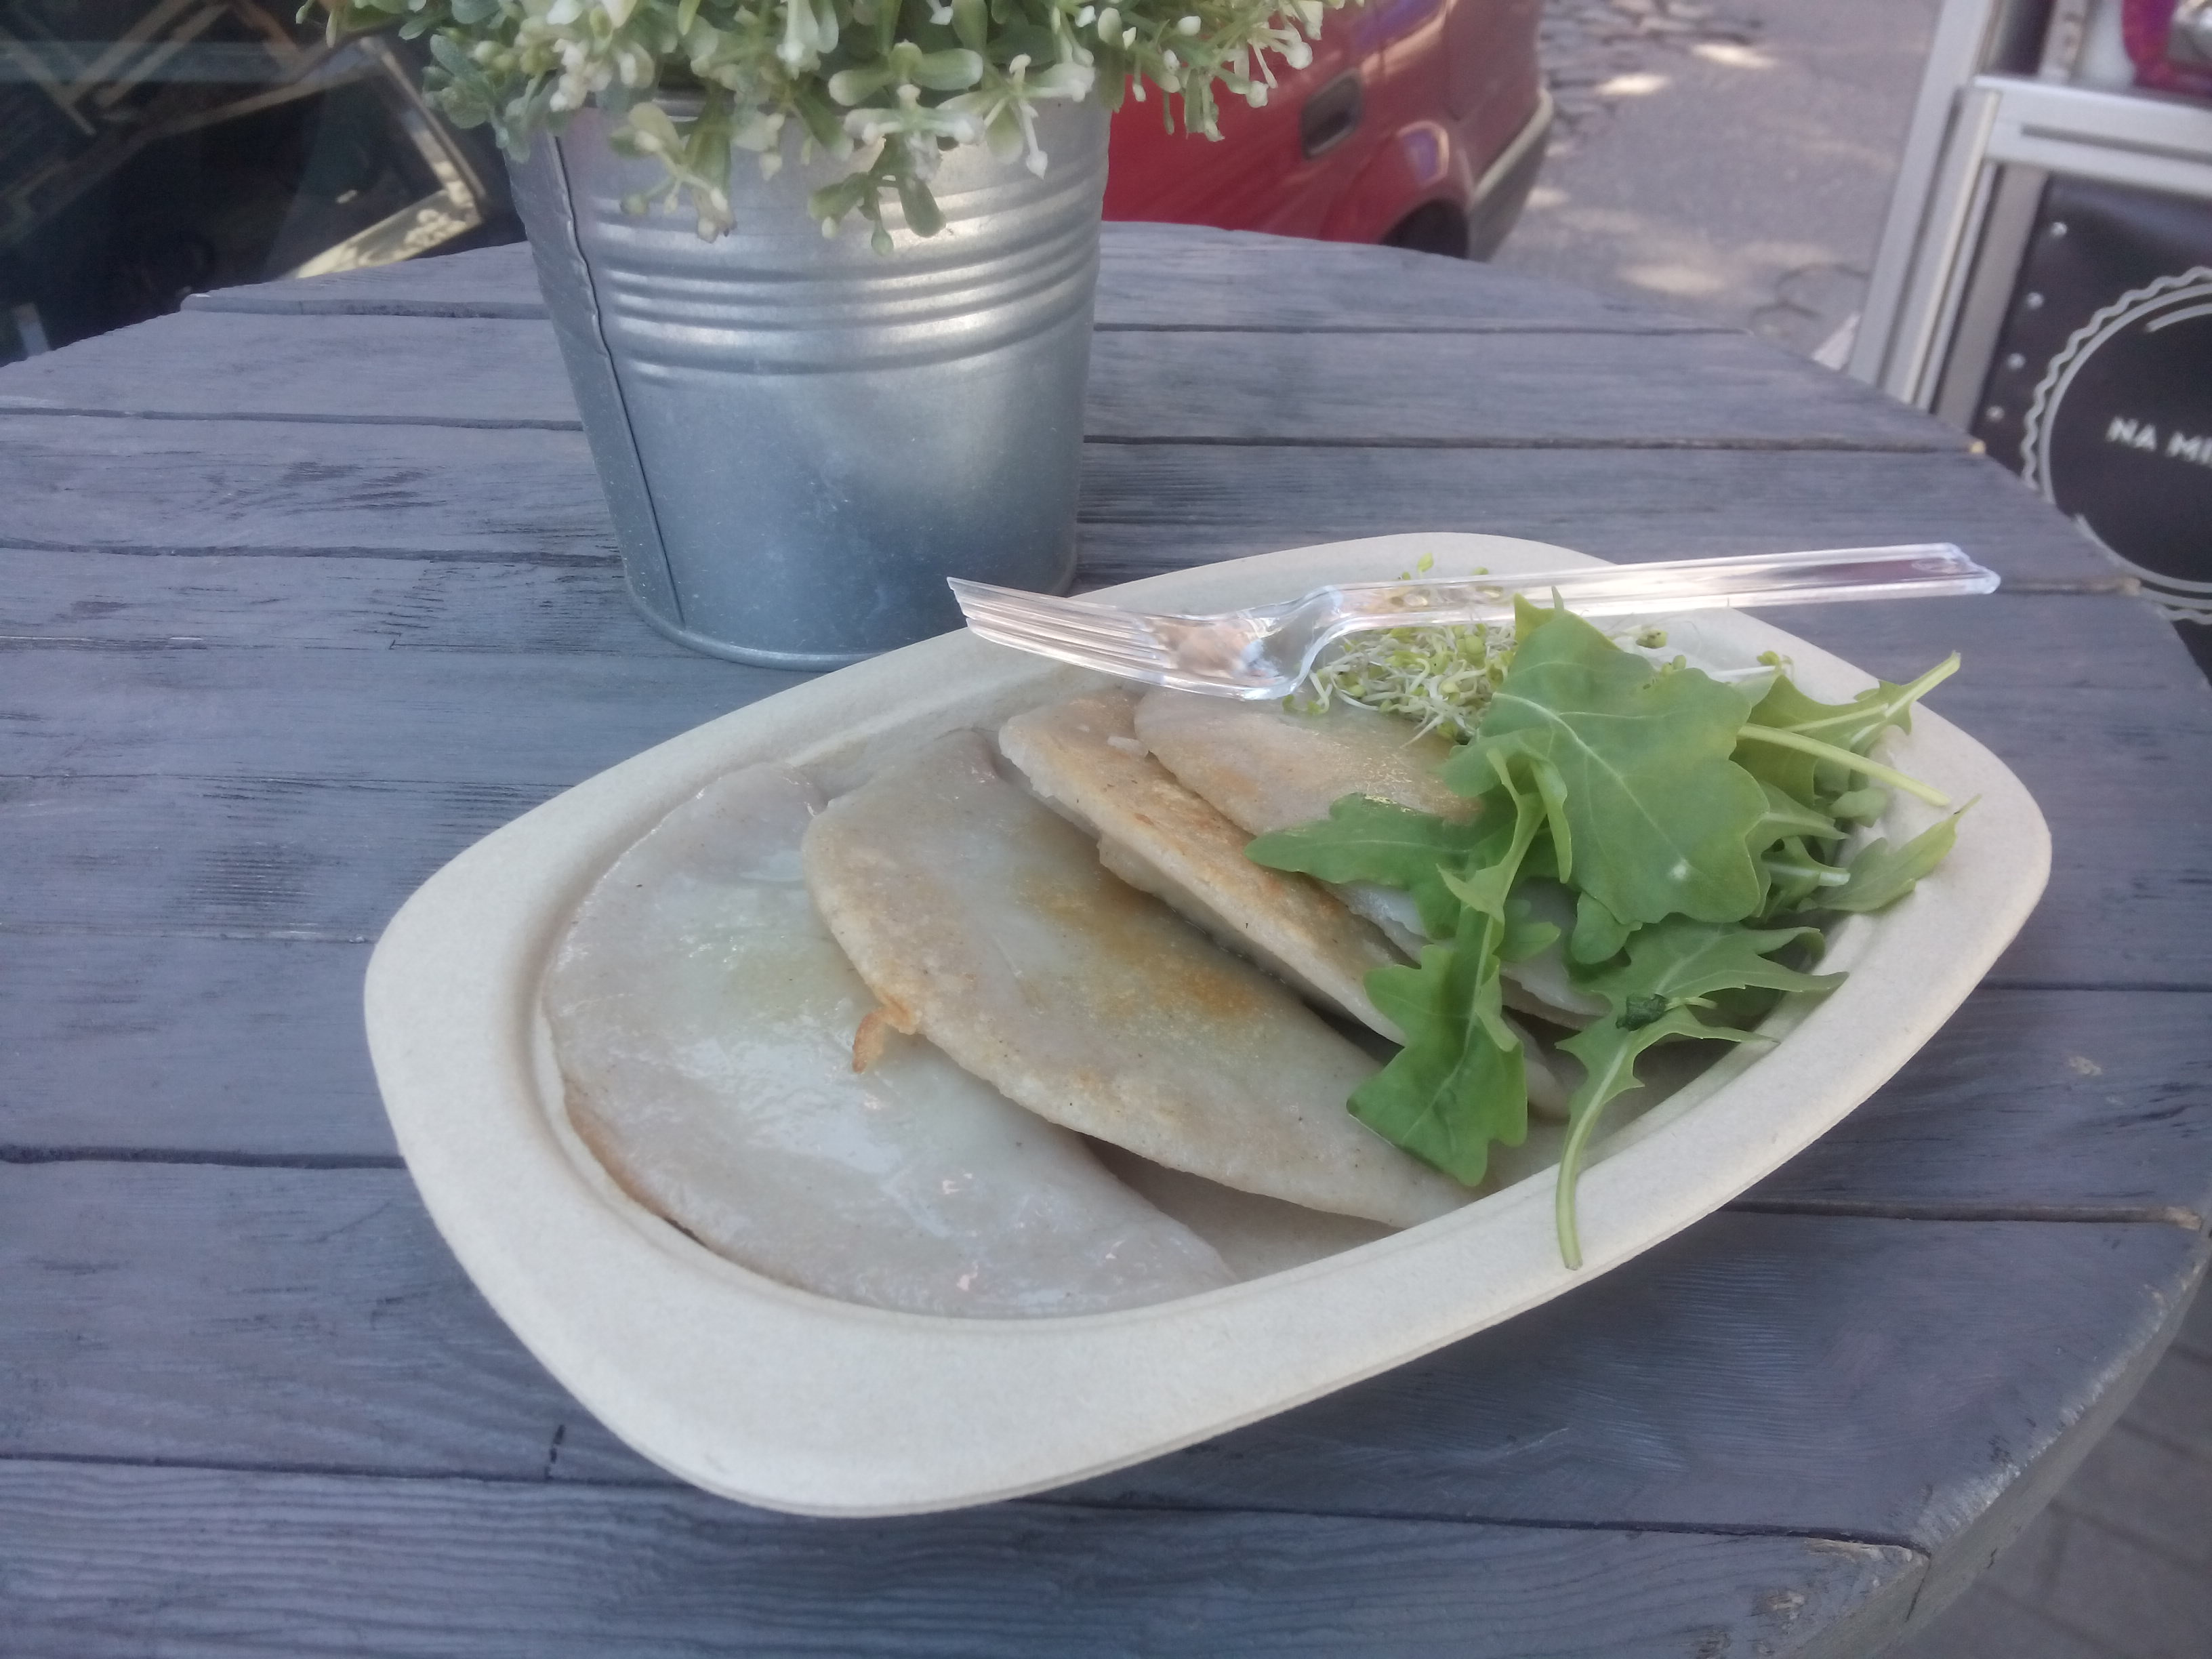 A wooden table with a metal plant pot and a cardboard plate containing four half-circle pierogi, plus salad